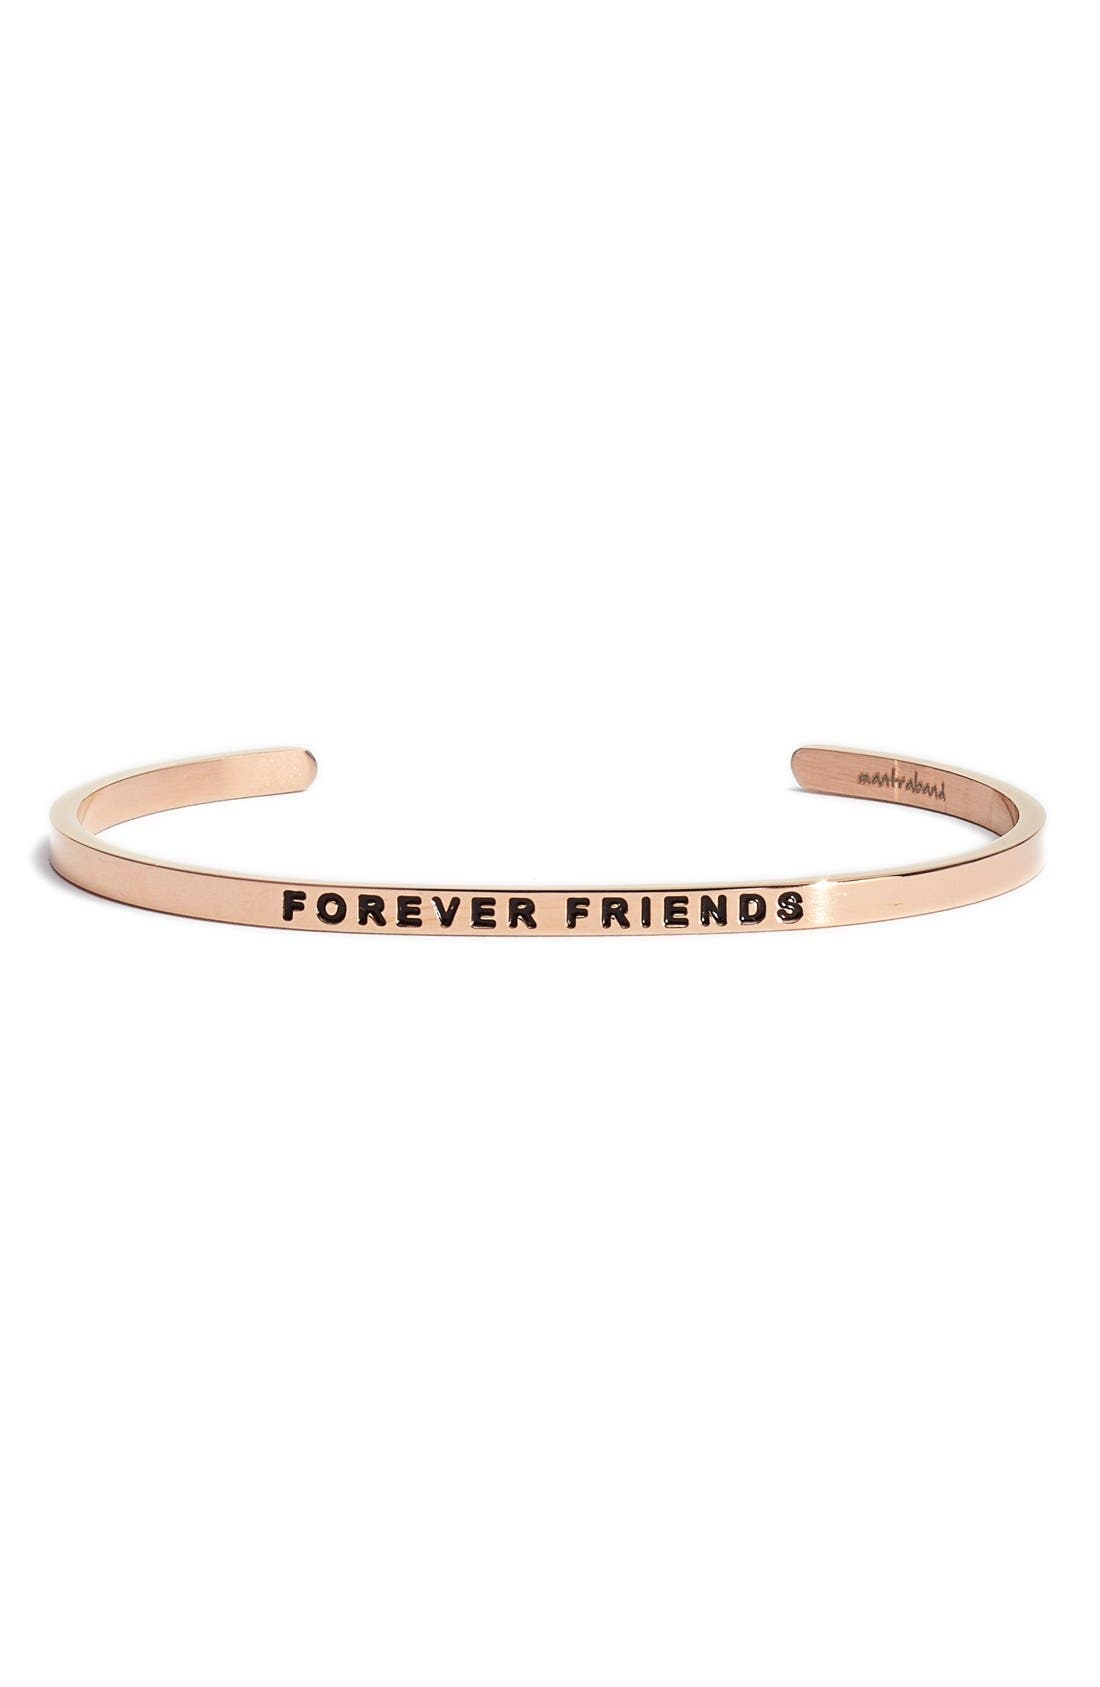 MANTRABAND 'Forever Friends' Cuff